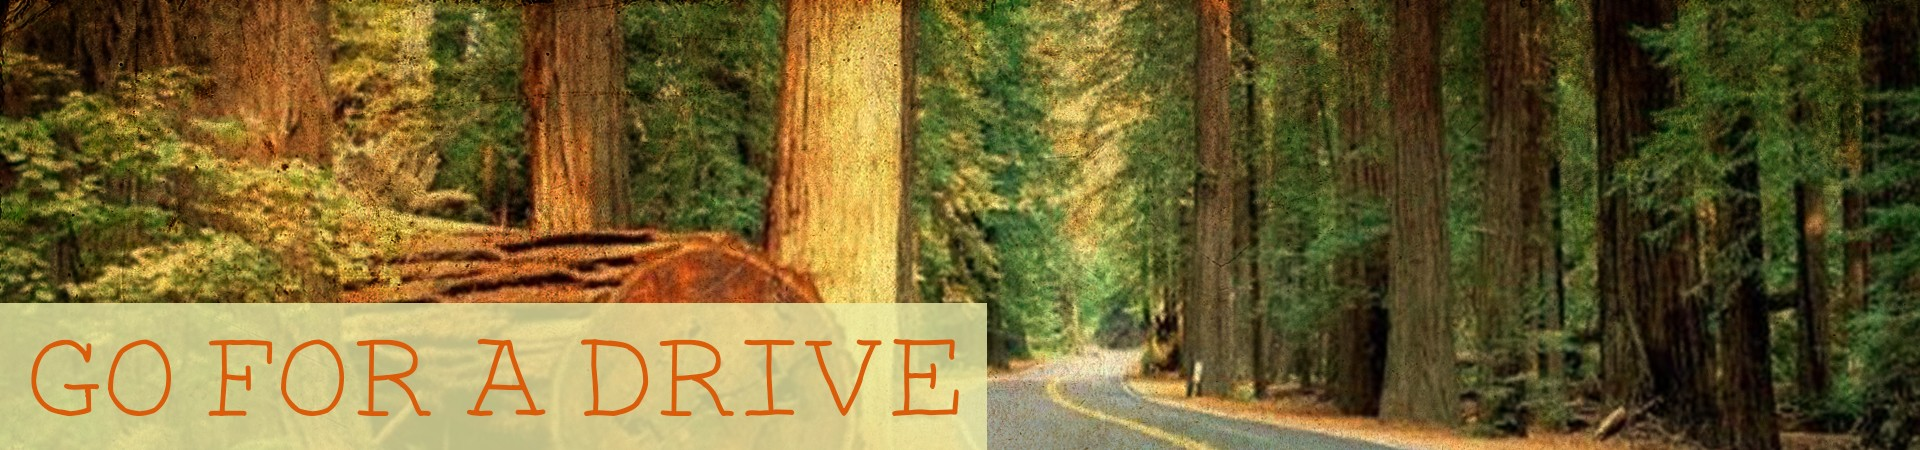 Go for a drive through the Avenue of the Giants